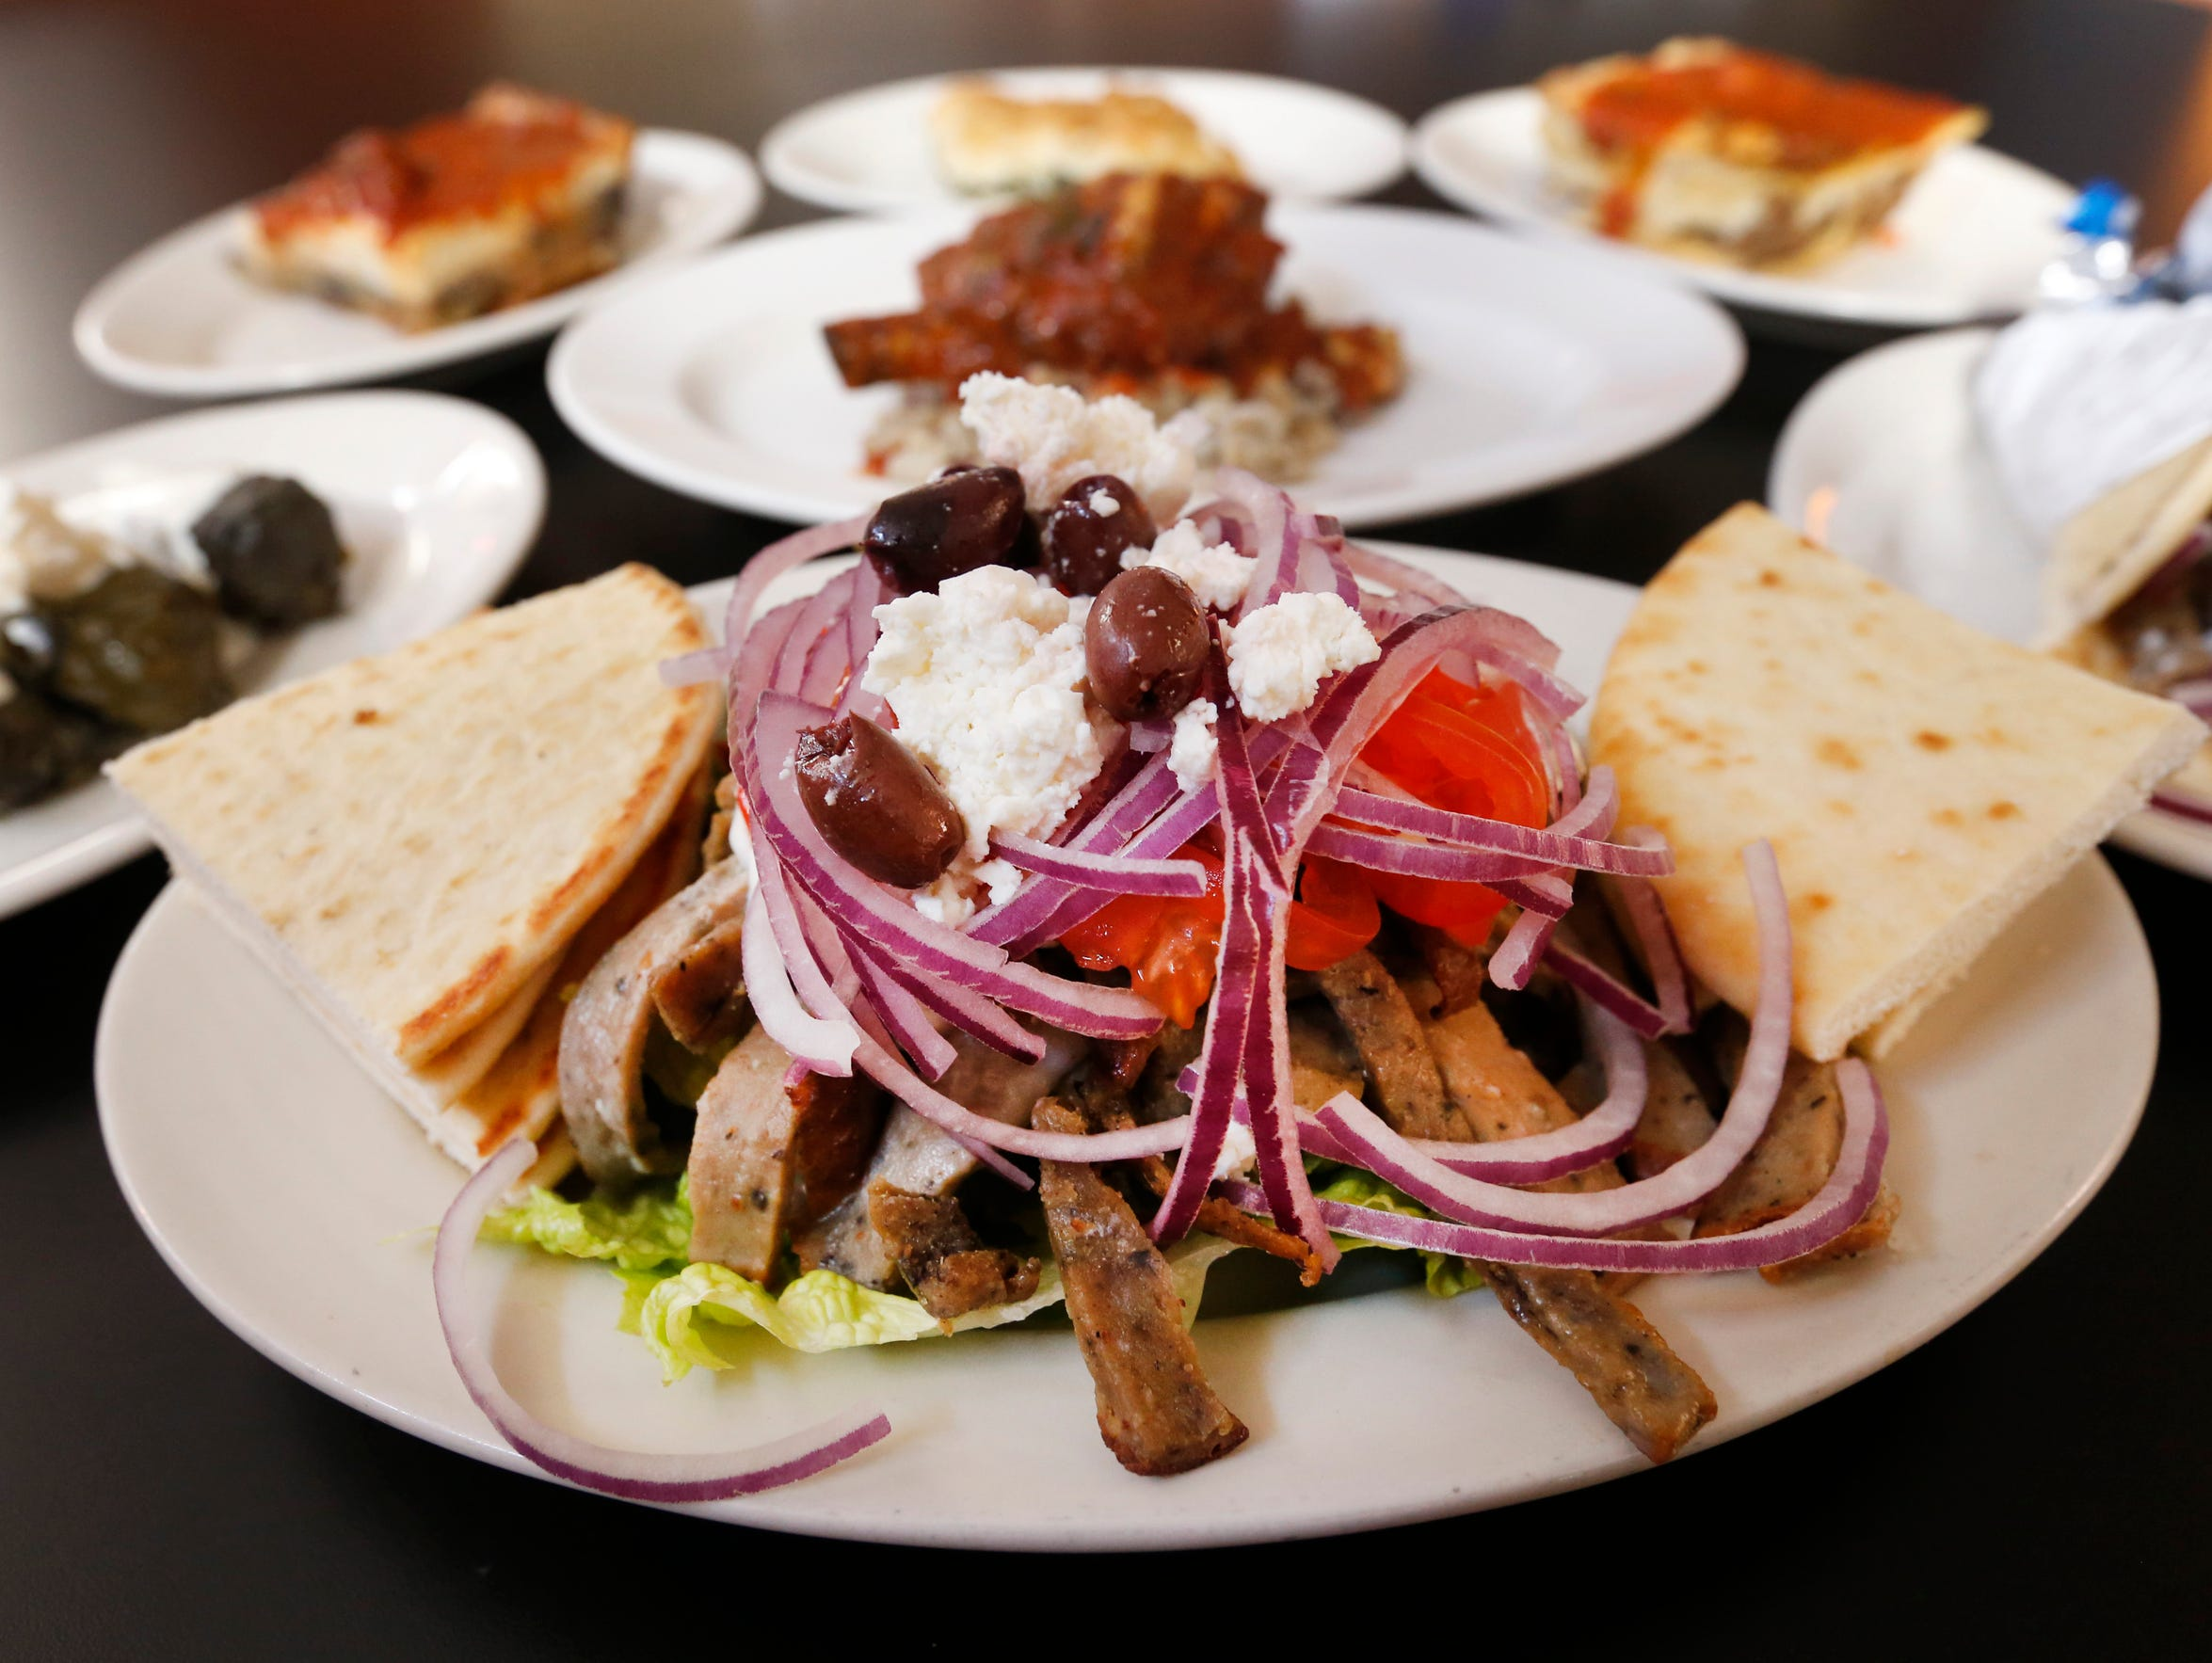 The Gyros for Two are one of the more popular dishes